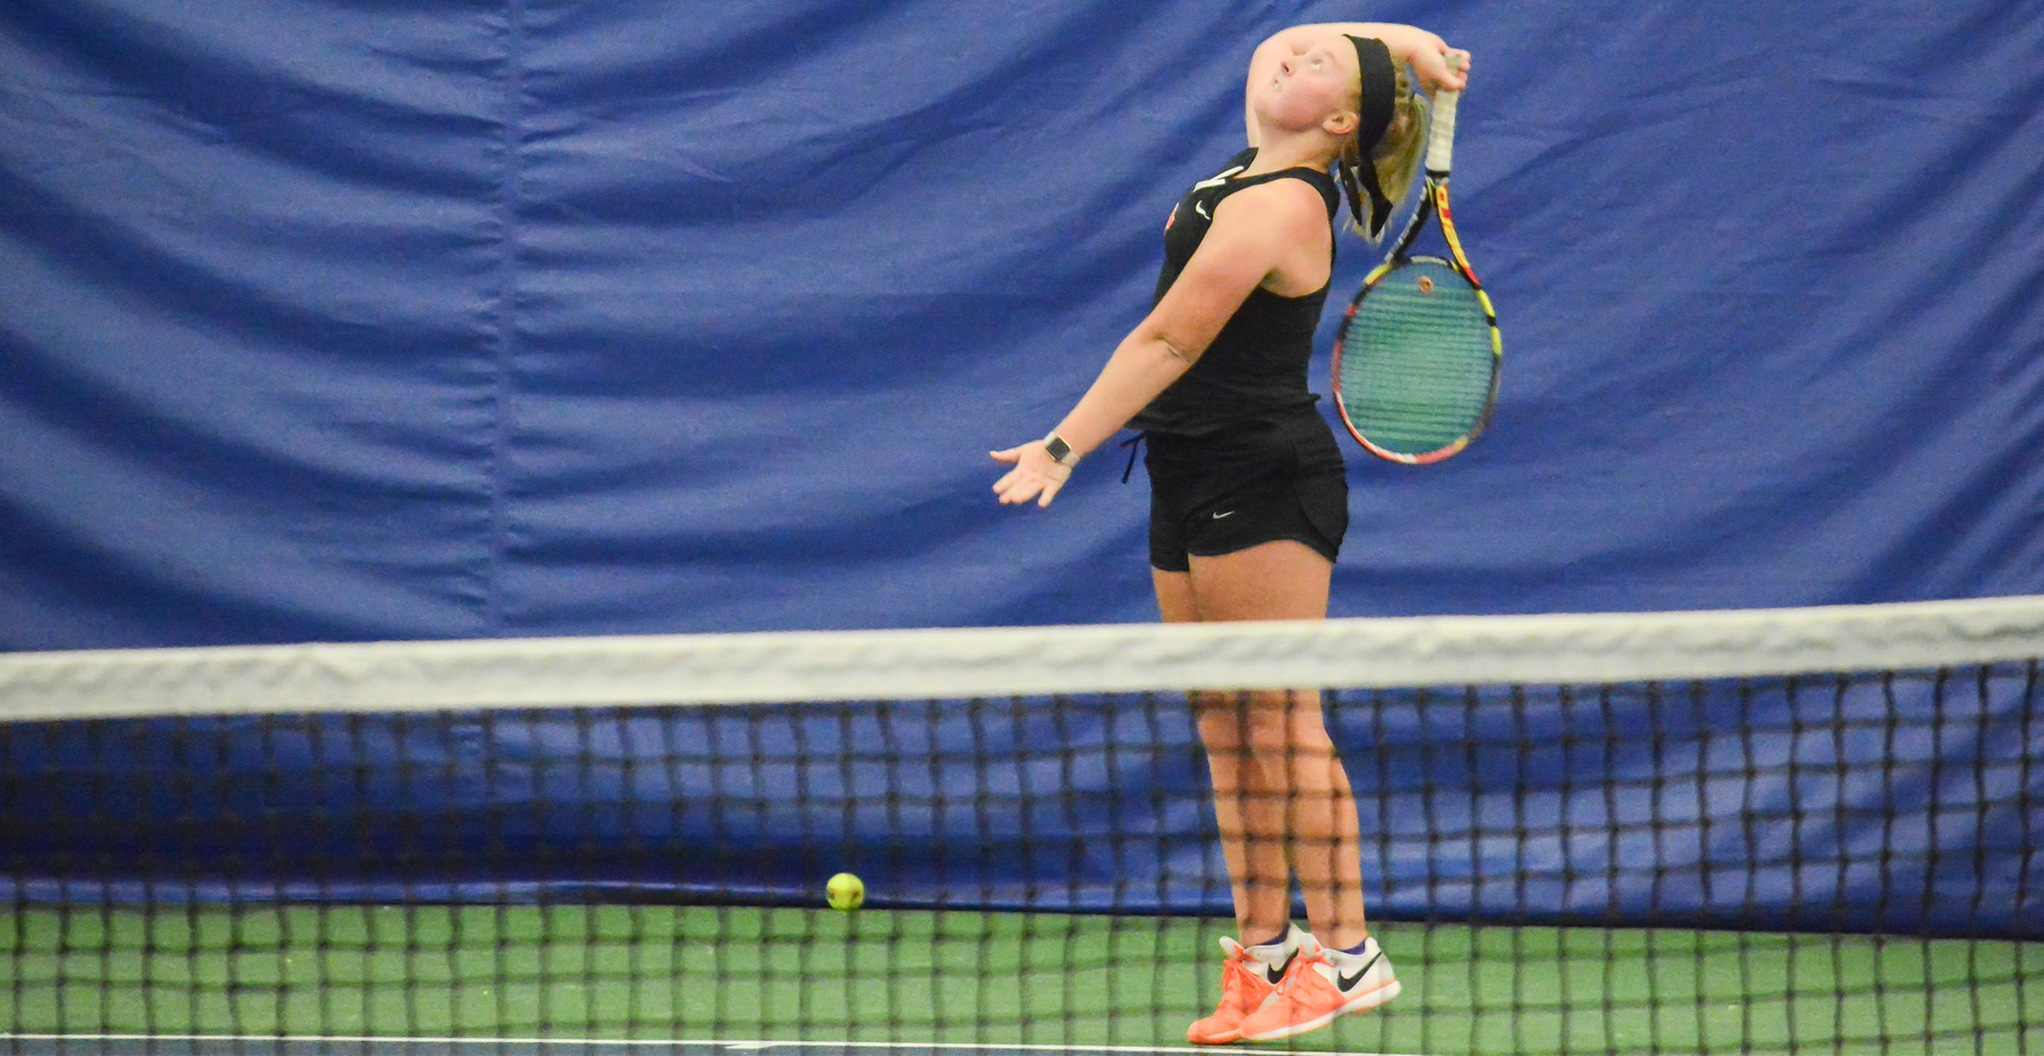 Oilers Complete Day 1 at USTA/ITA Regional